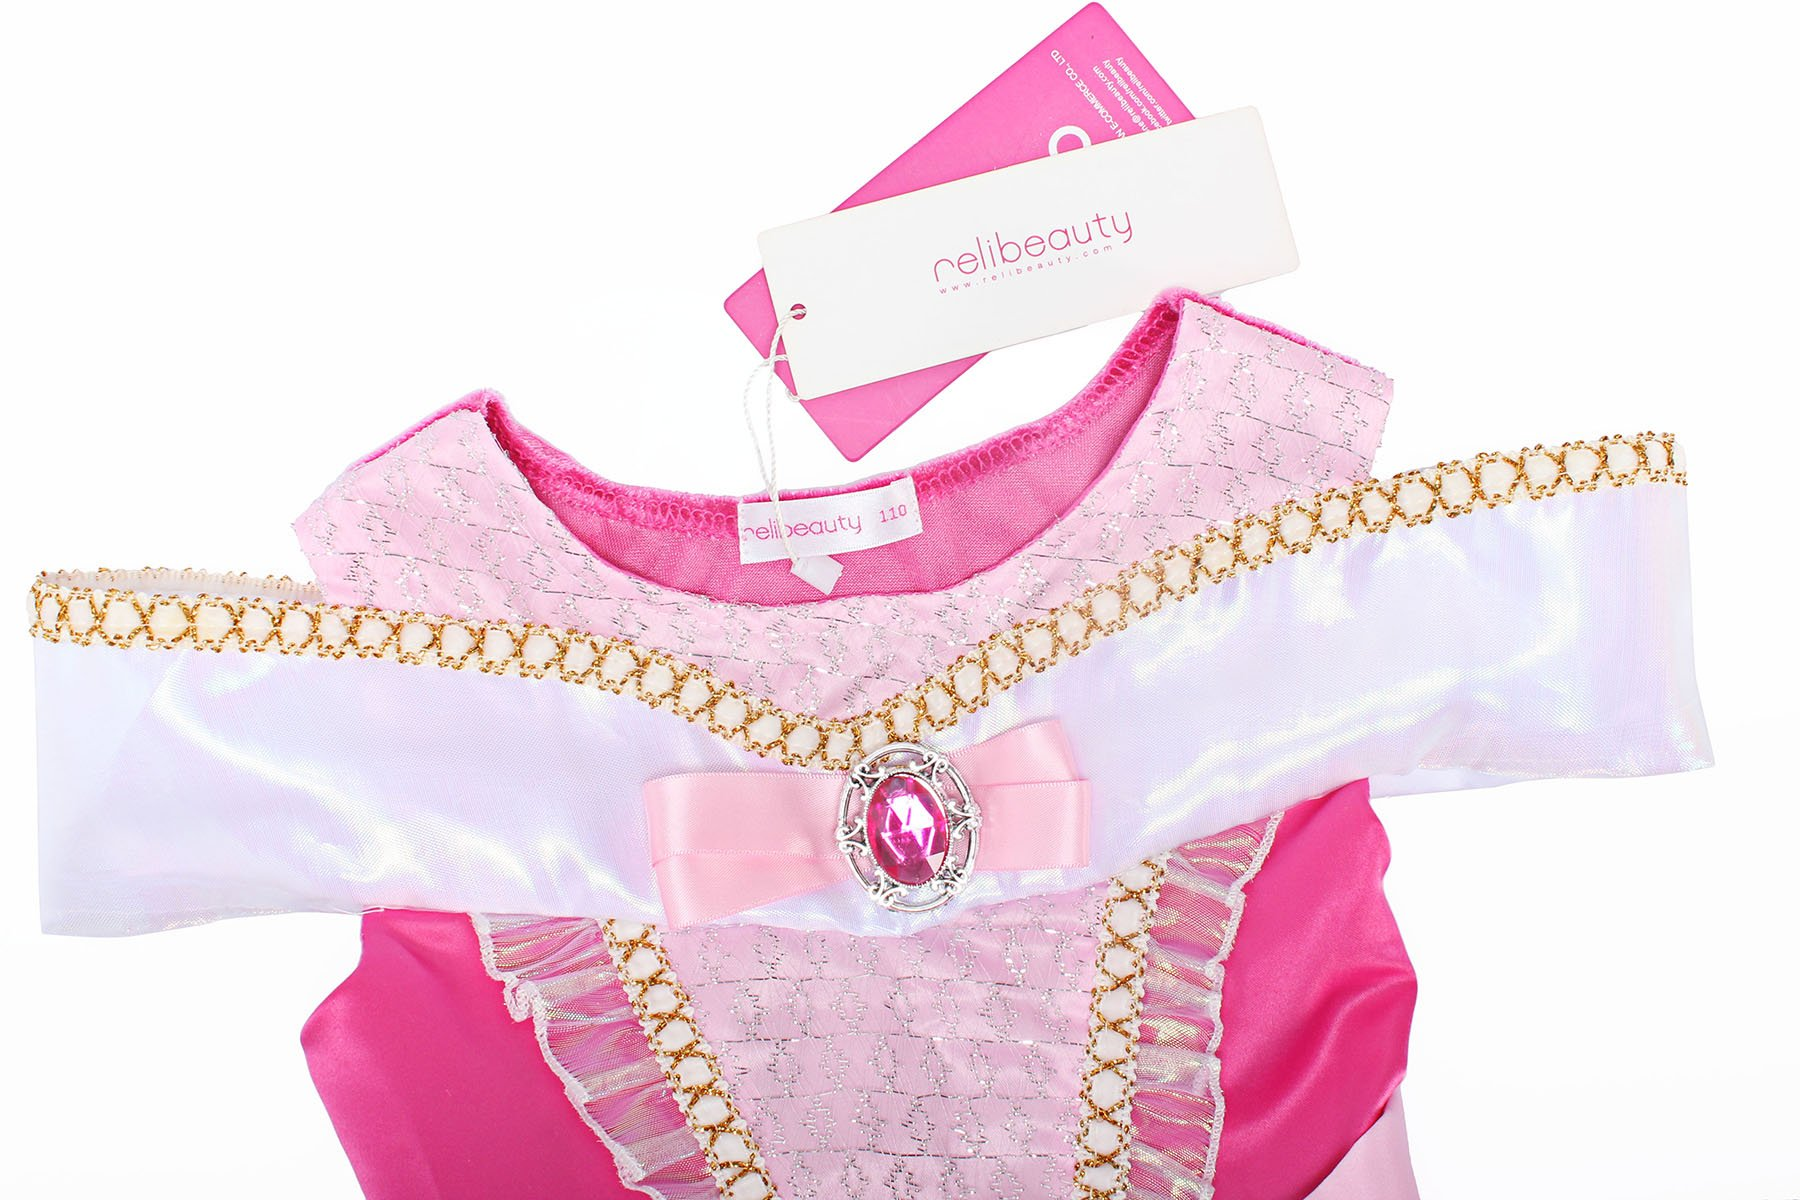 ReliBeauty Girls Drop Shoulder Princess Aurora Costume Dress up, Hot Pink, 7-8 by ReliBeauty (Image #5)